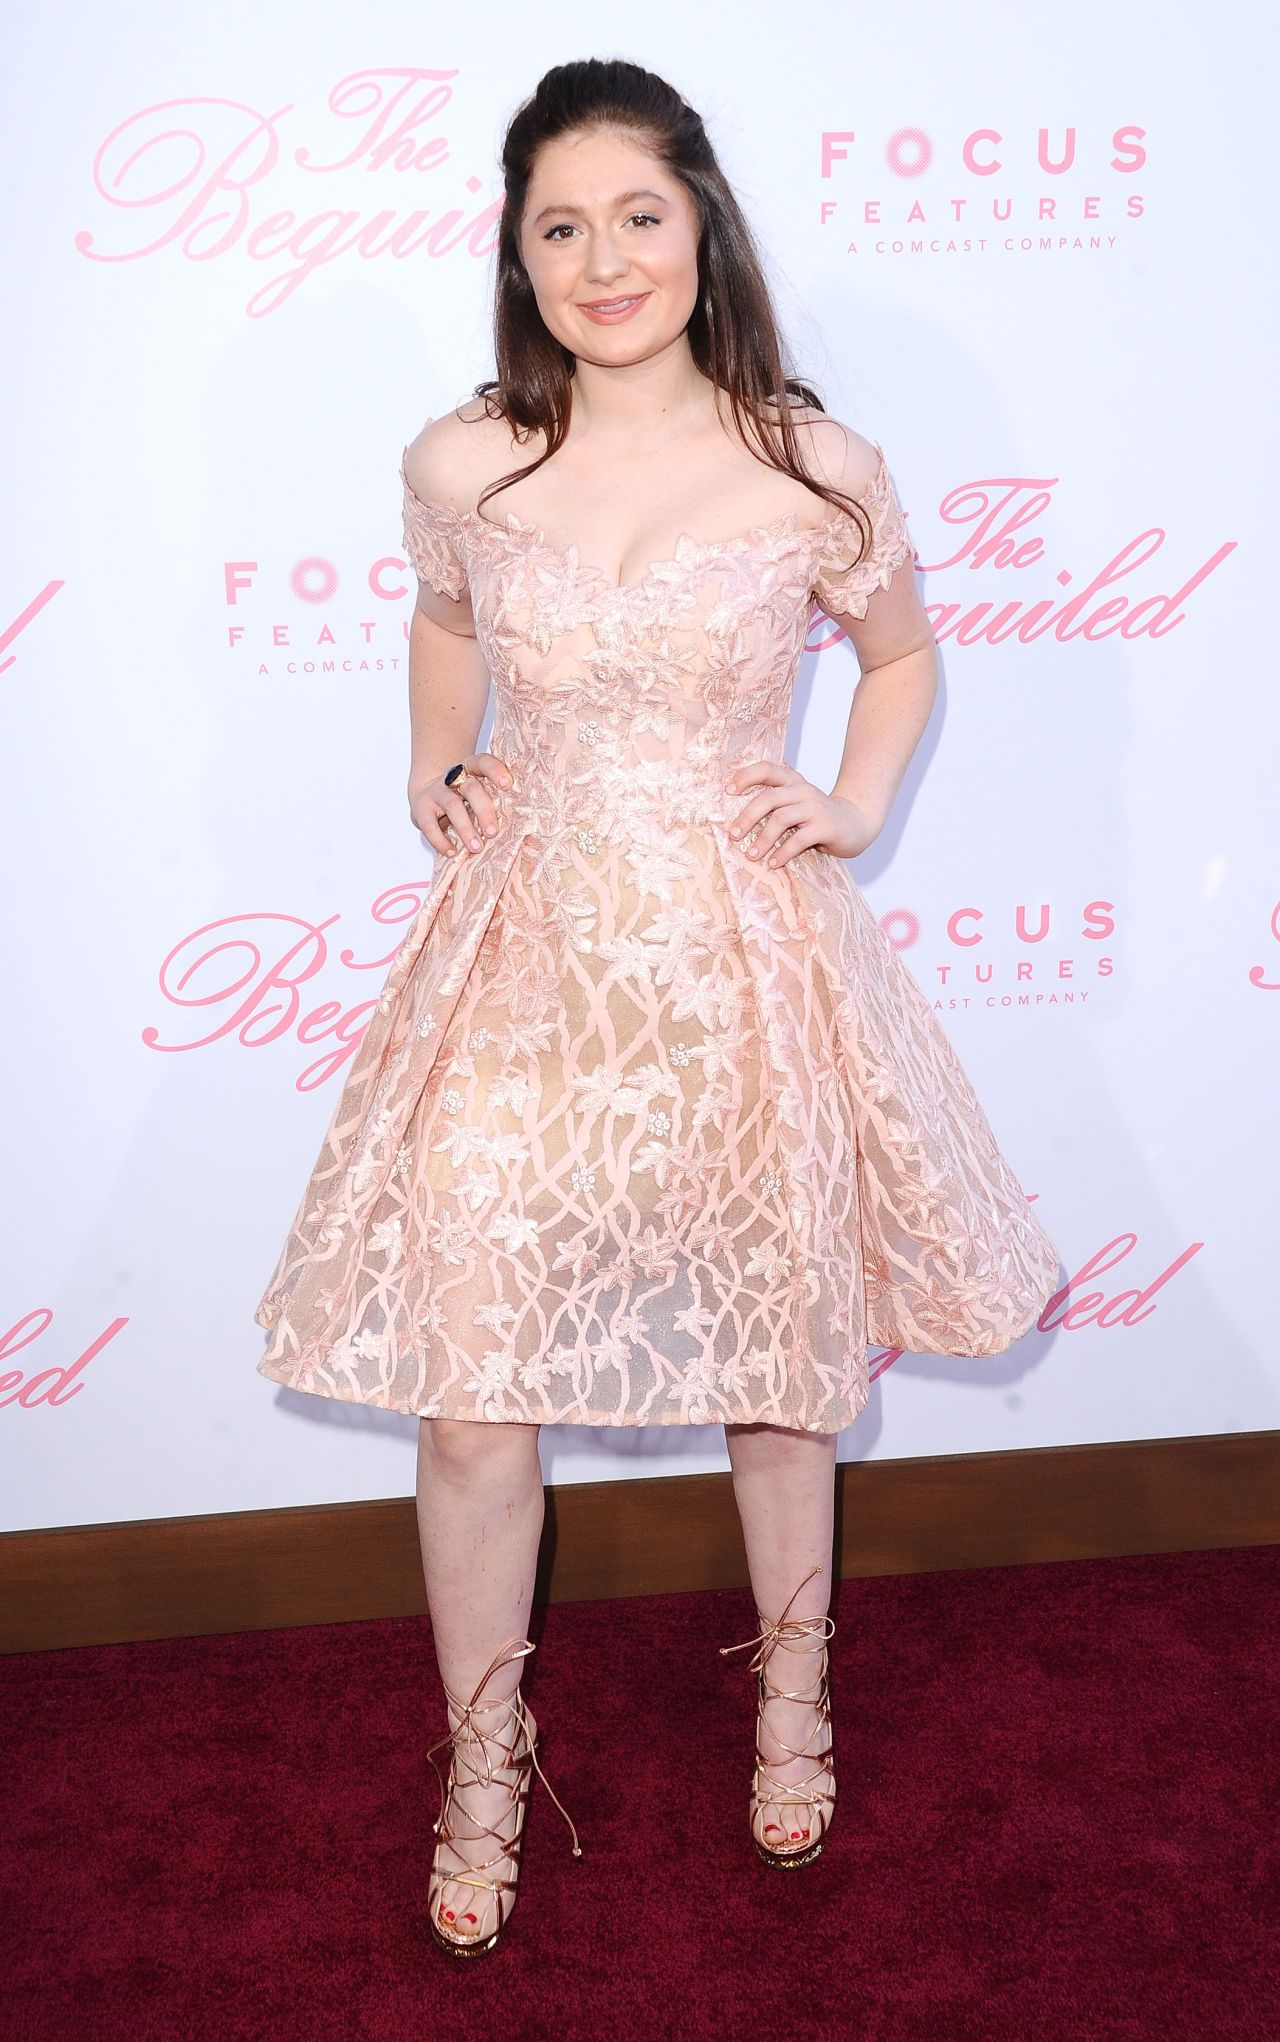 Emma kenney the beguiled movie premiere in los angeles